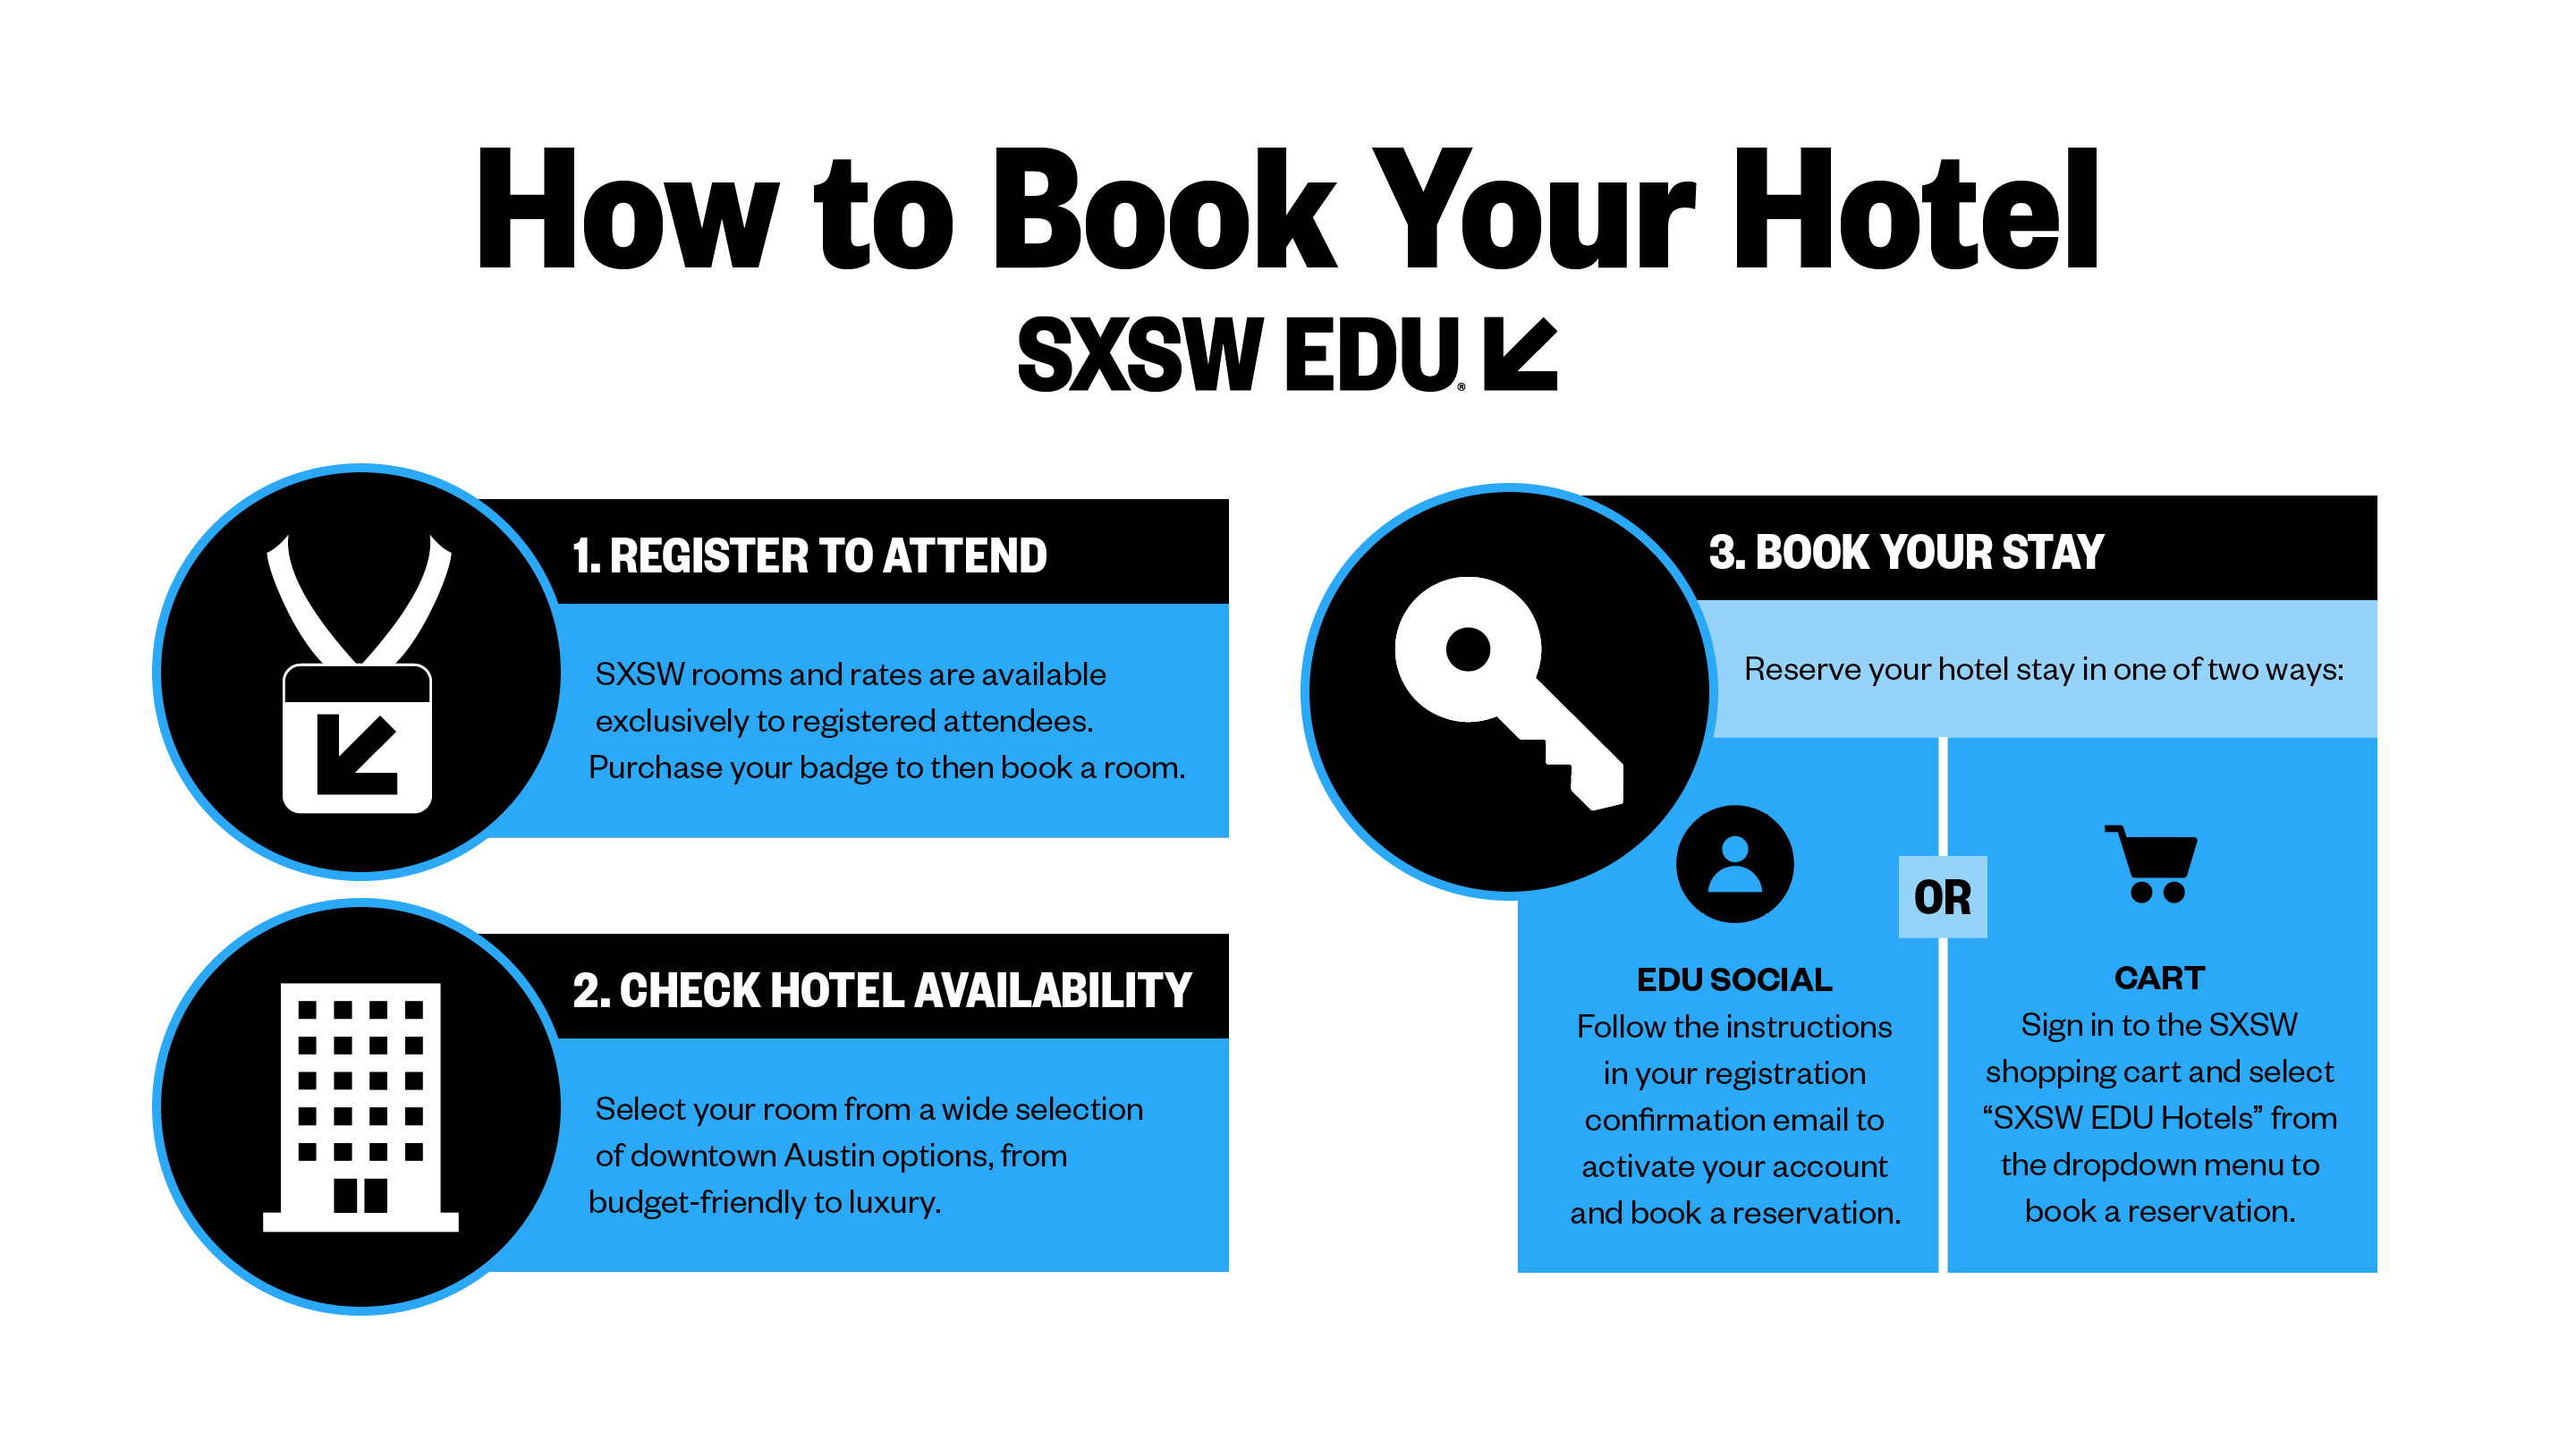 SXSW EDU How to book stay infographic.